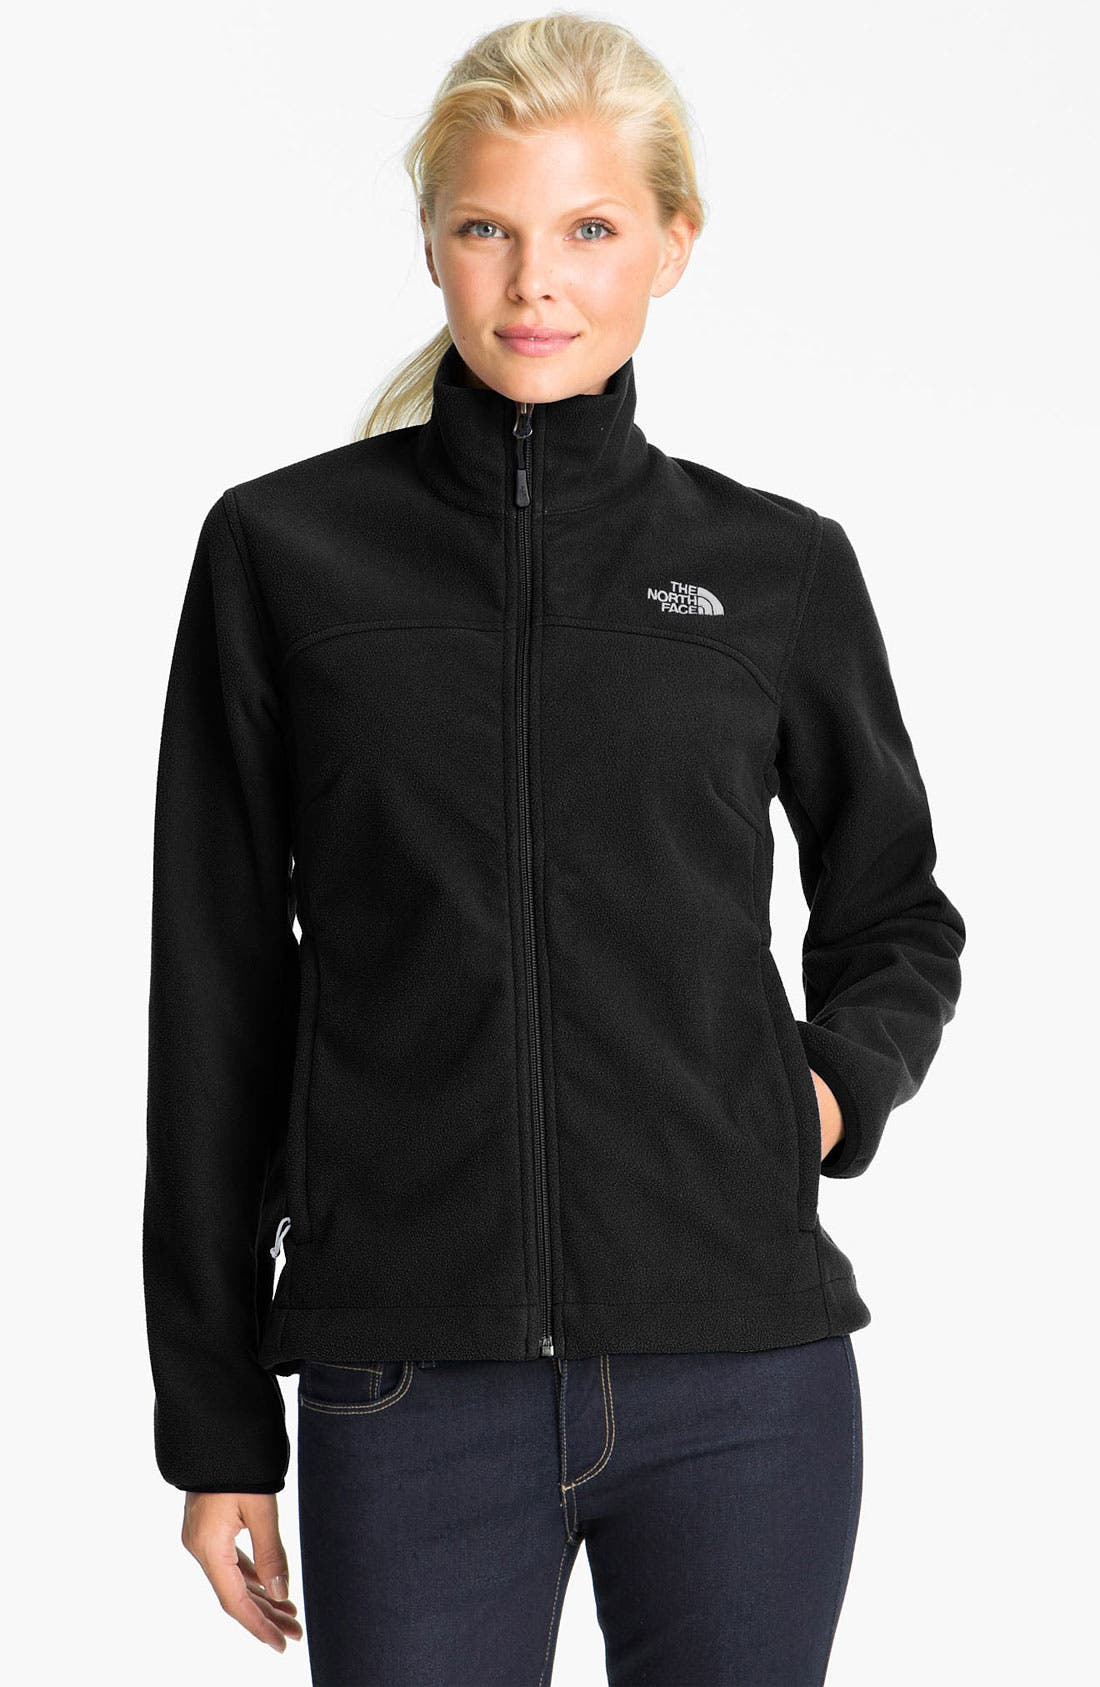 Alternate Image 1 Selected - The North Face 'Windwall' Jacket